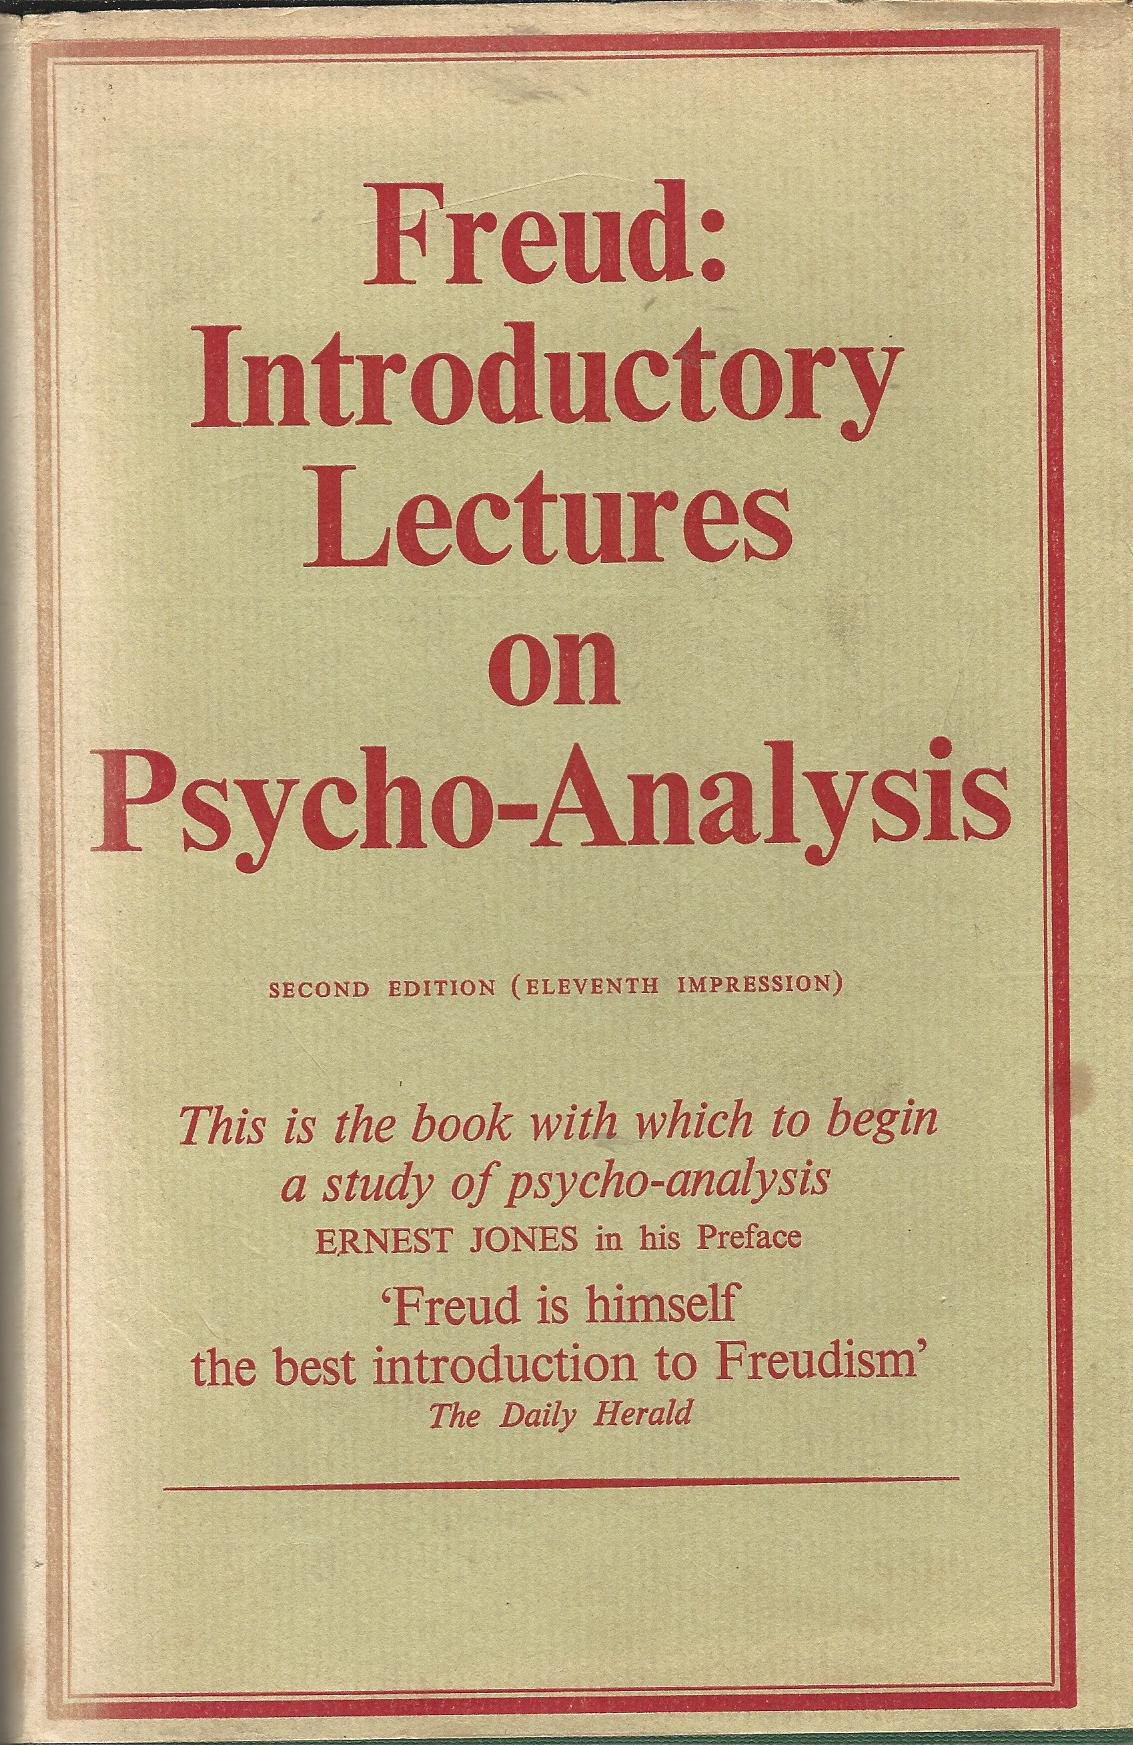 Image for Freud: Introductory Lectures on Psycho-Analysis.